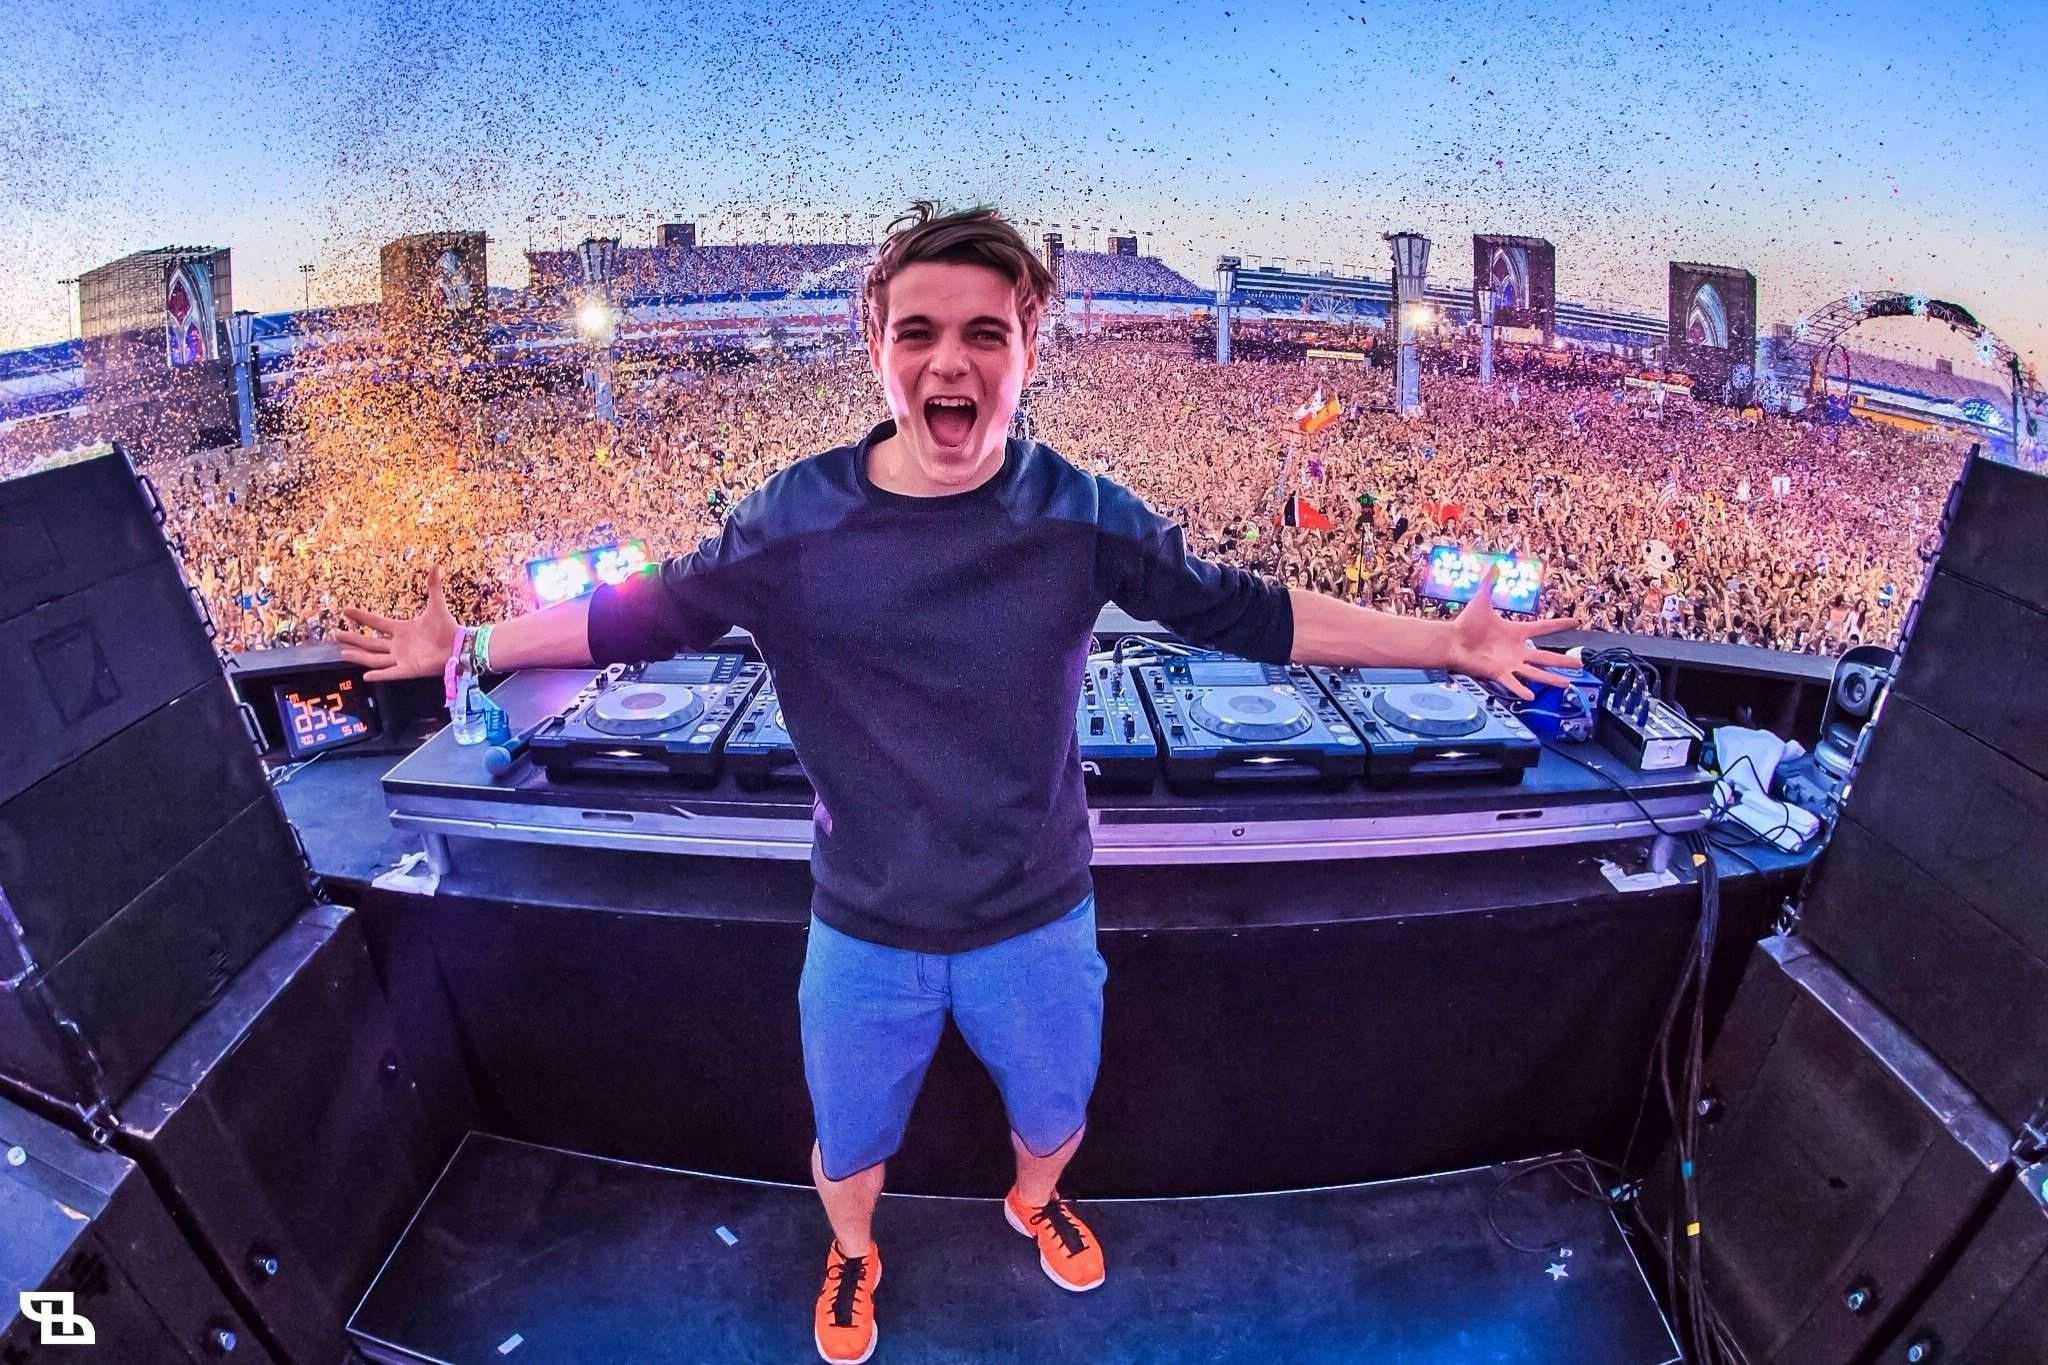 Martin Garrix Wallpapers 873.57 Kb - 4USkY